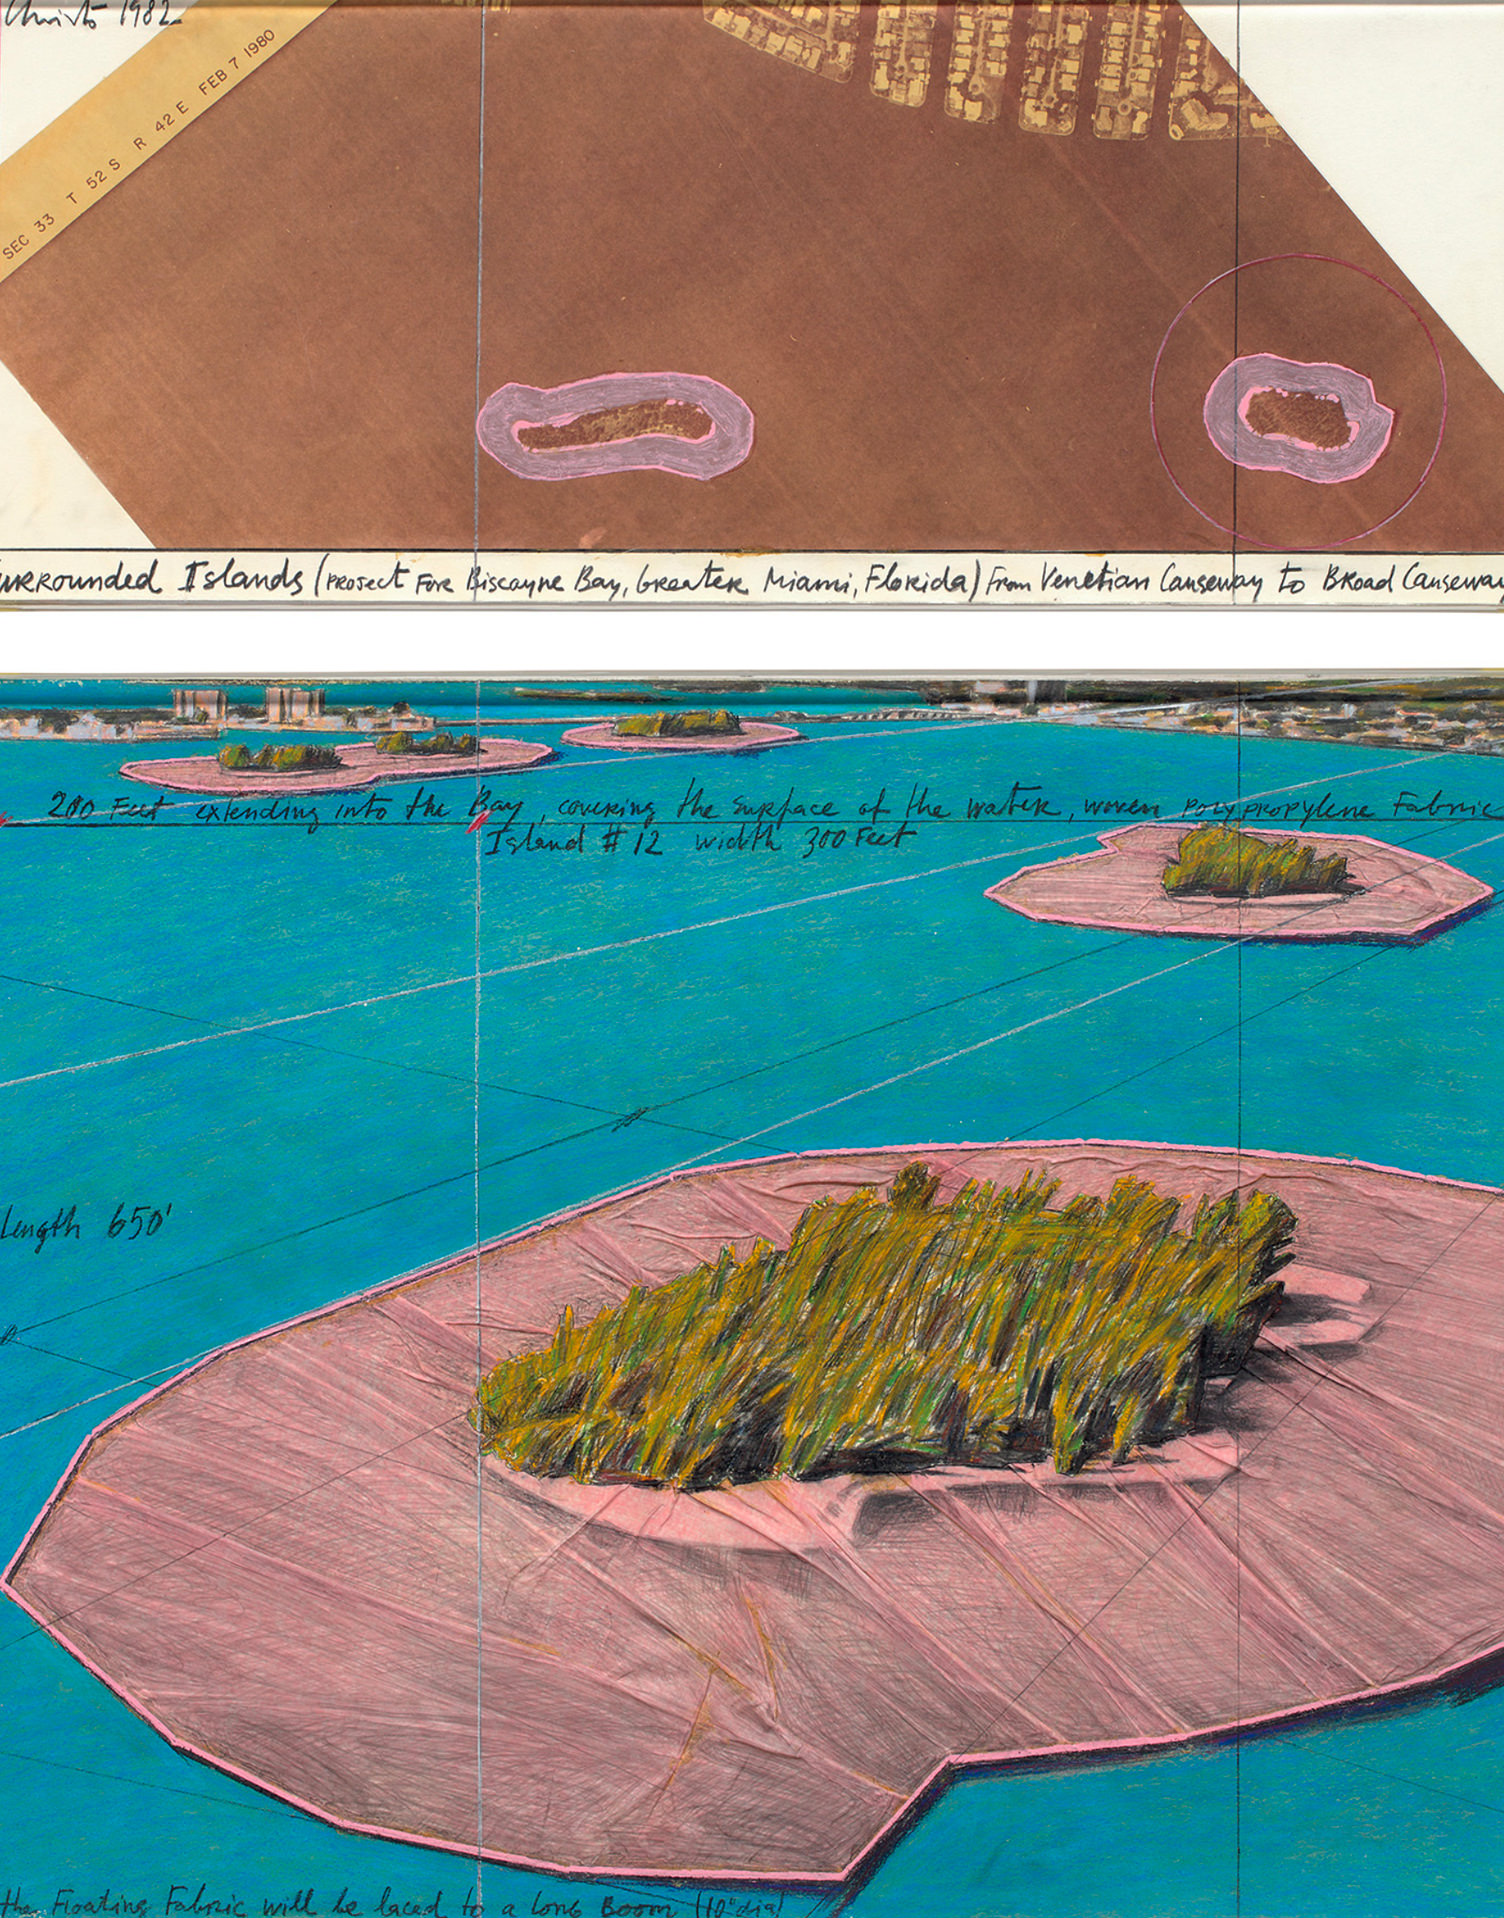 Christo. Surrounded Islands, Project for Biscayne Bay, Greater Miami, Florida, 1982